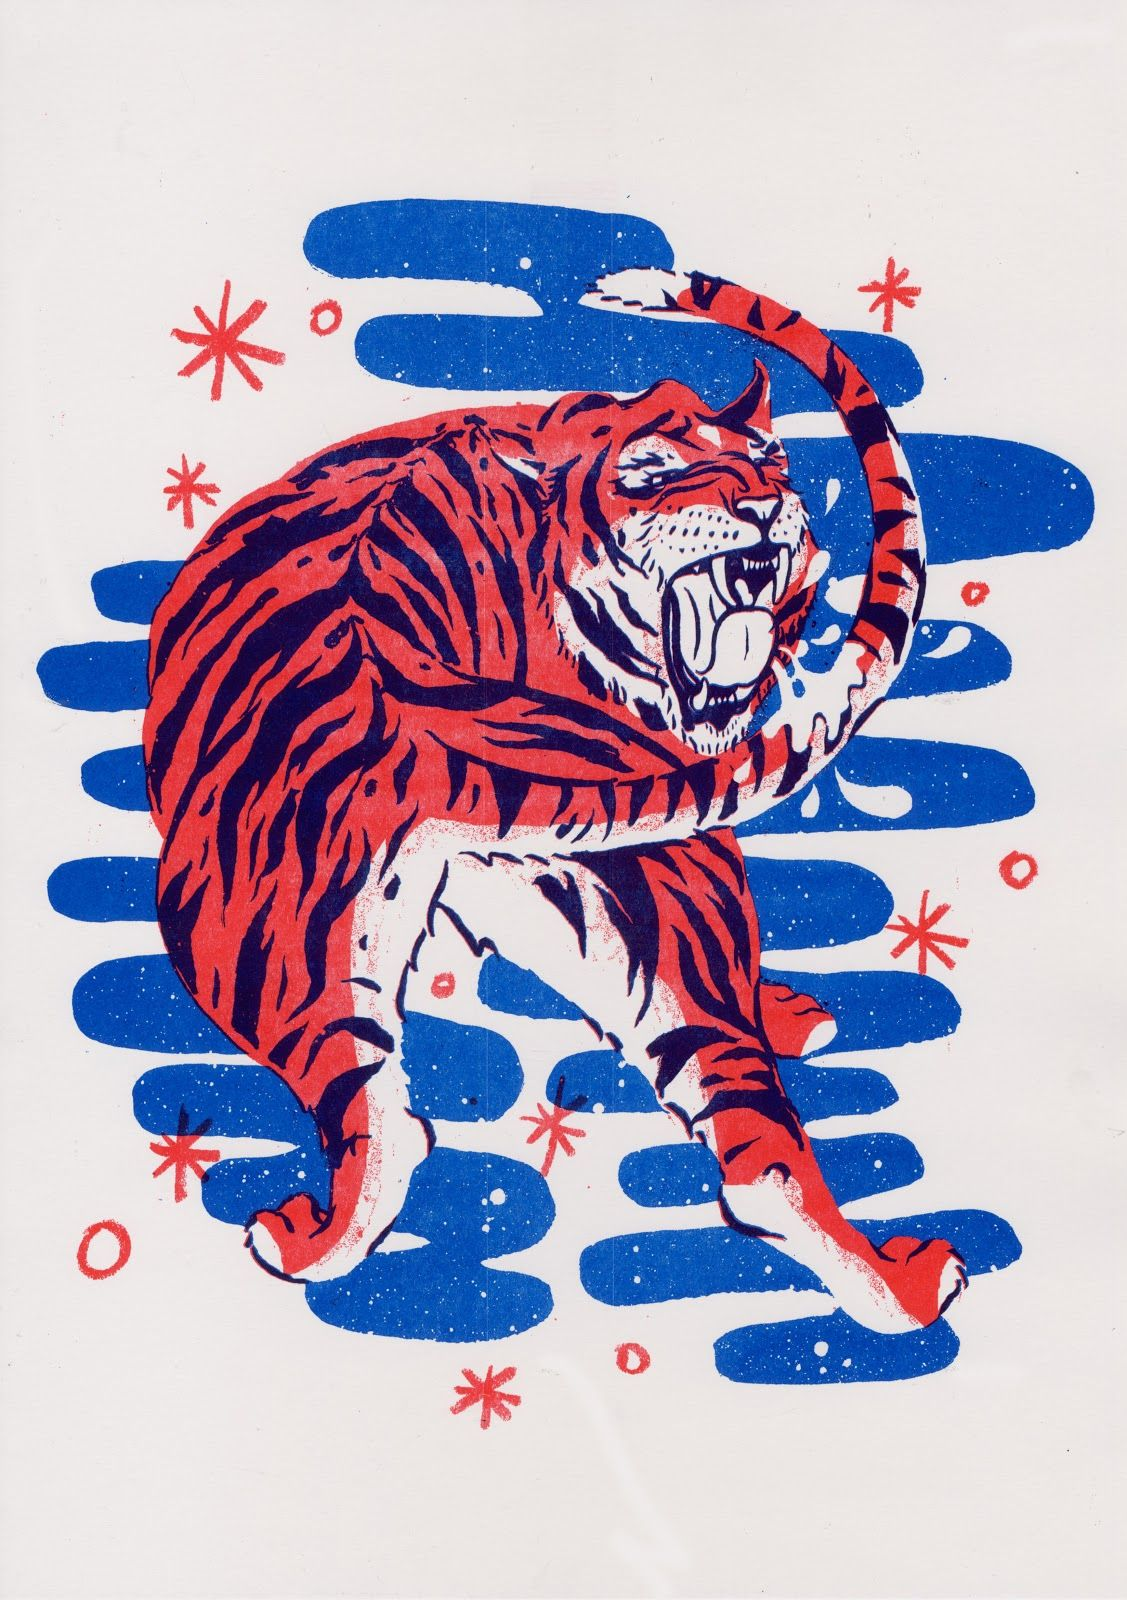 Patch Keyes, Bright red and blue, A3, via Bellevue Press Risograph ...